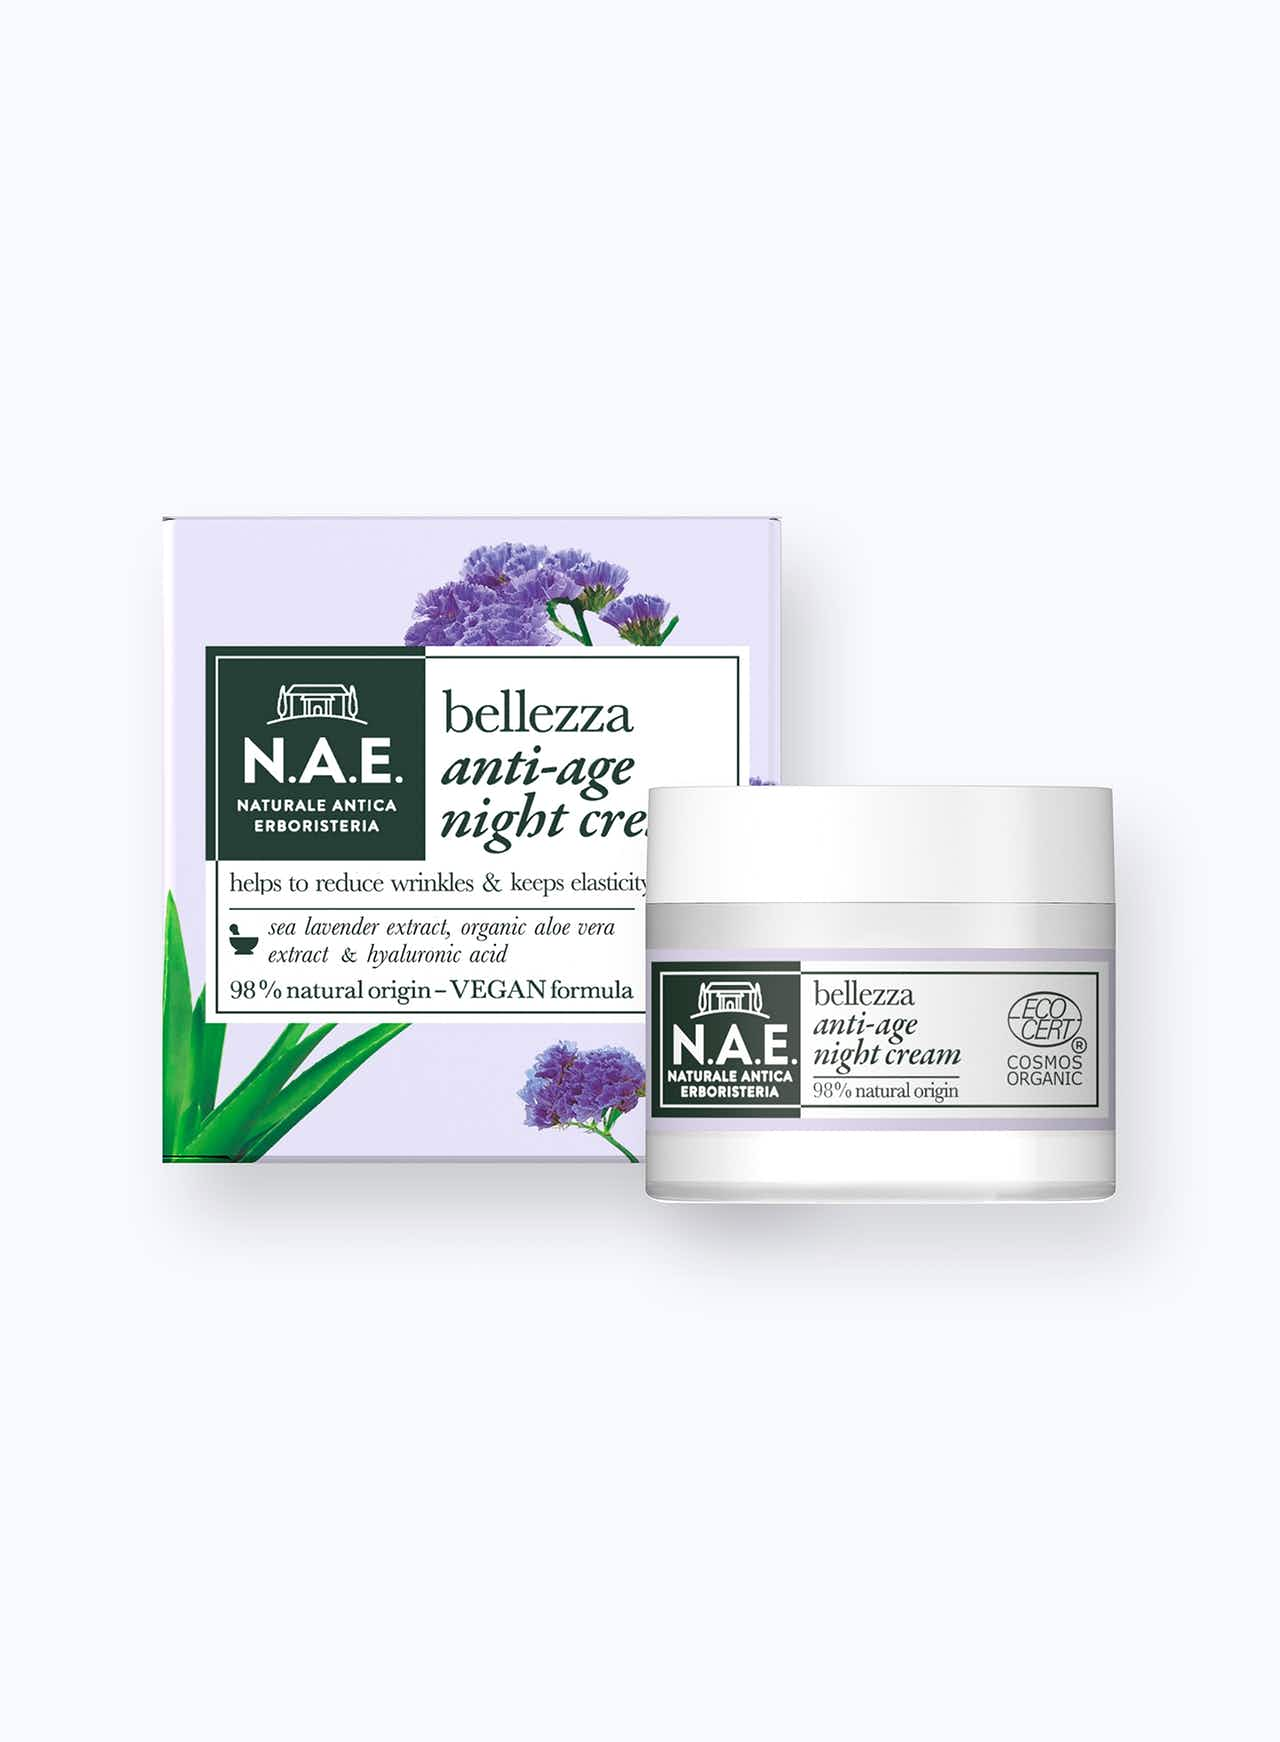 Anti-age Night Cream, 50ml